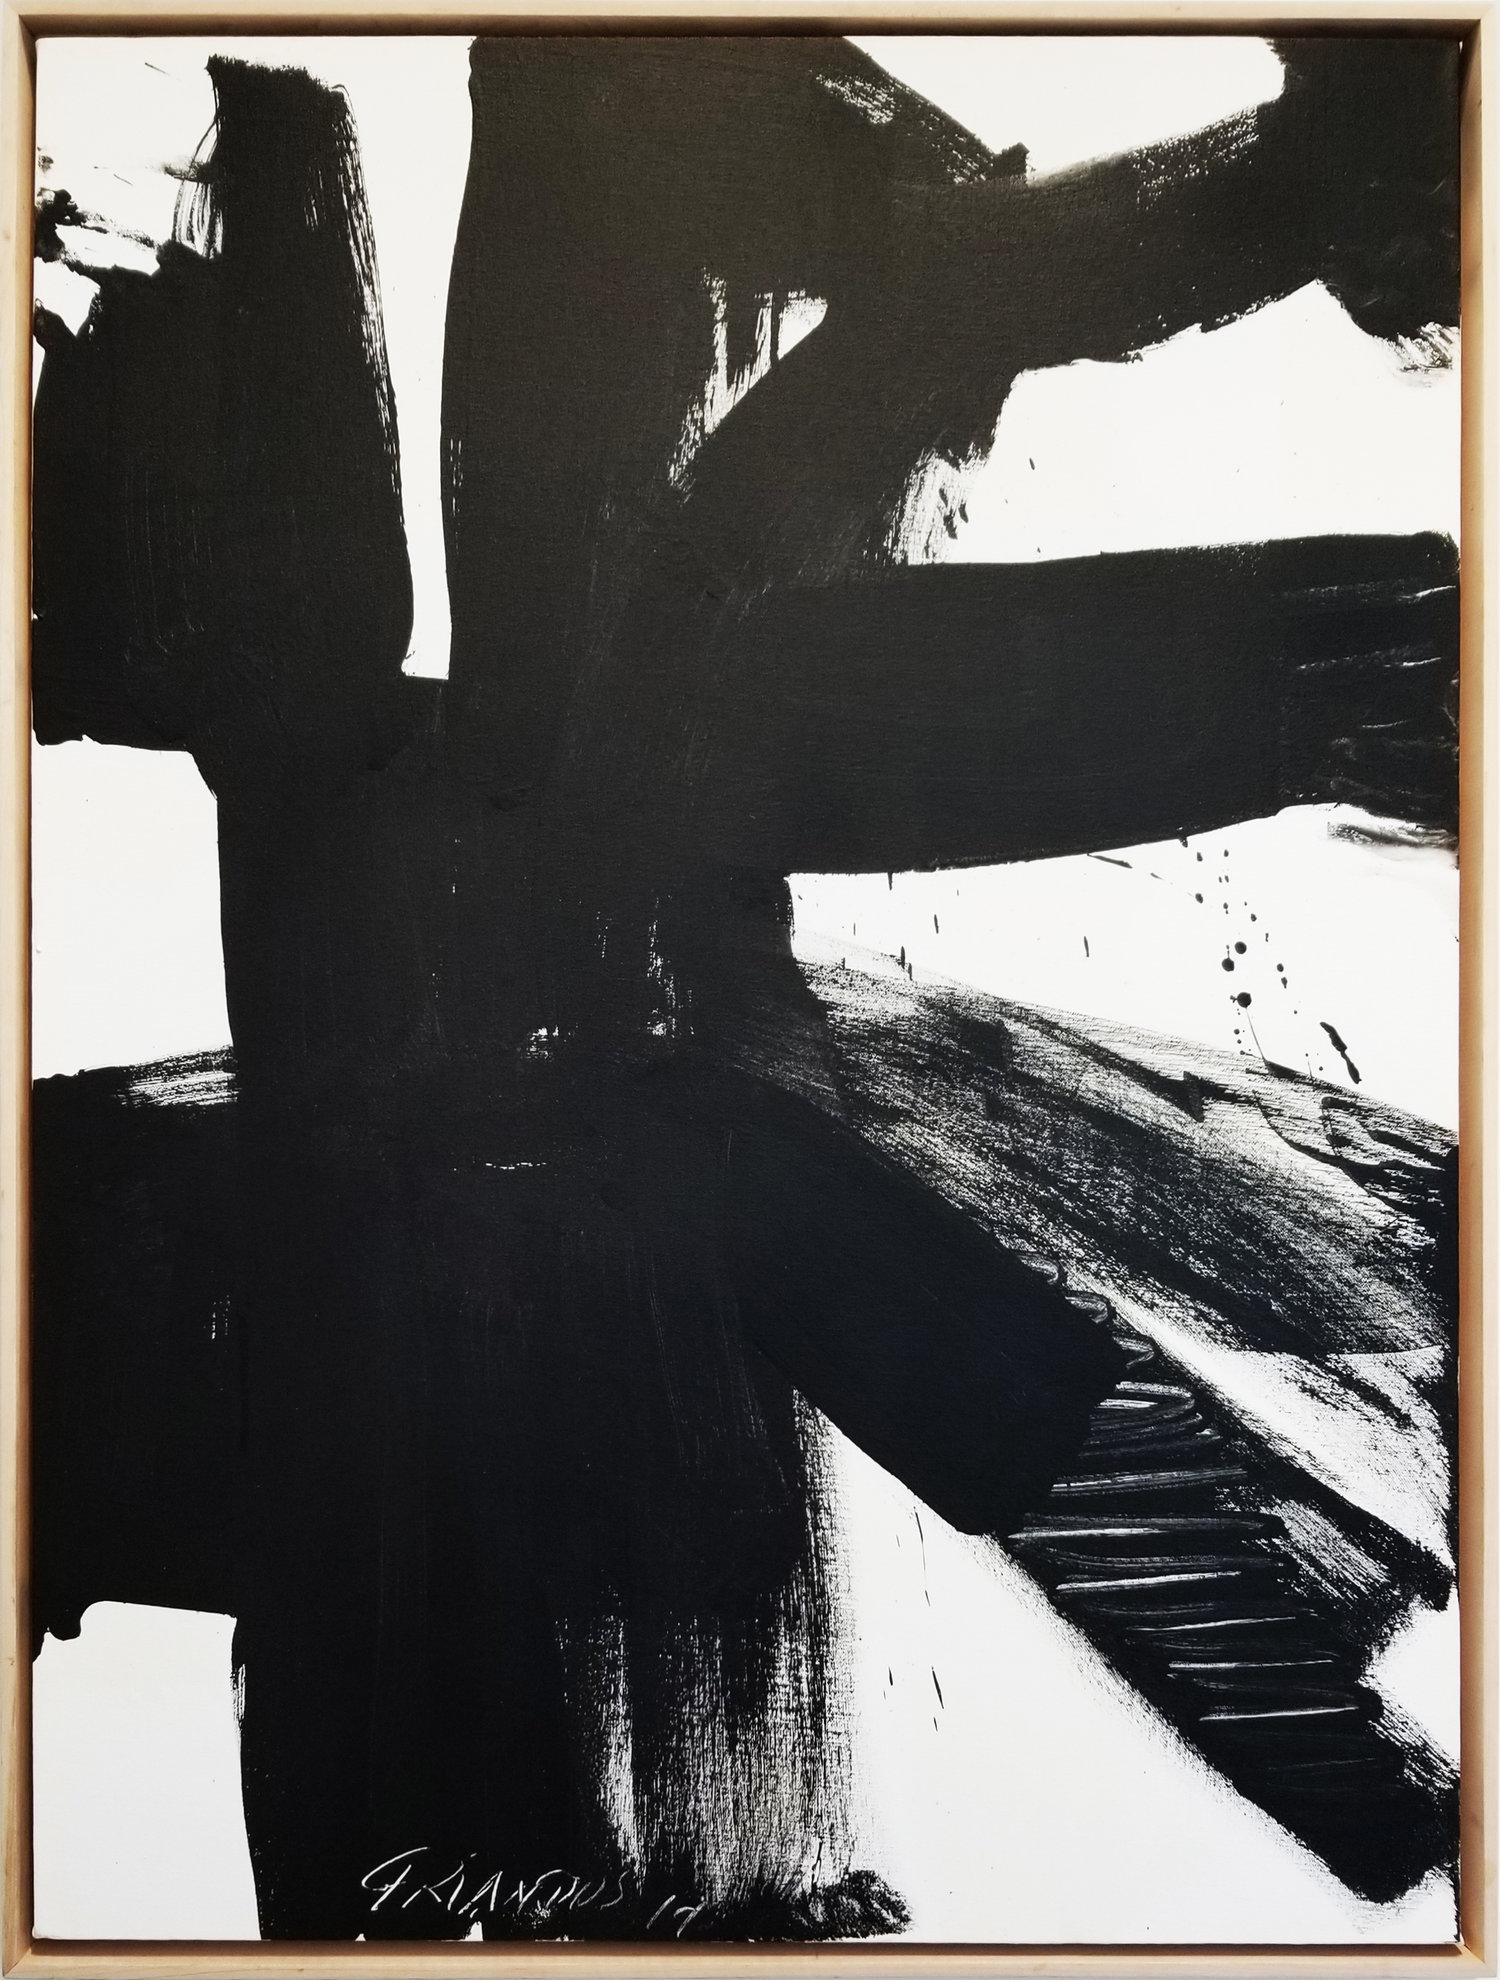 """Black and White #3, 2017, acrylic on canvas, 40"""" x 30"""" (101.6 x 76 cm)"""